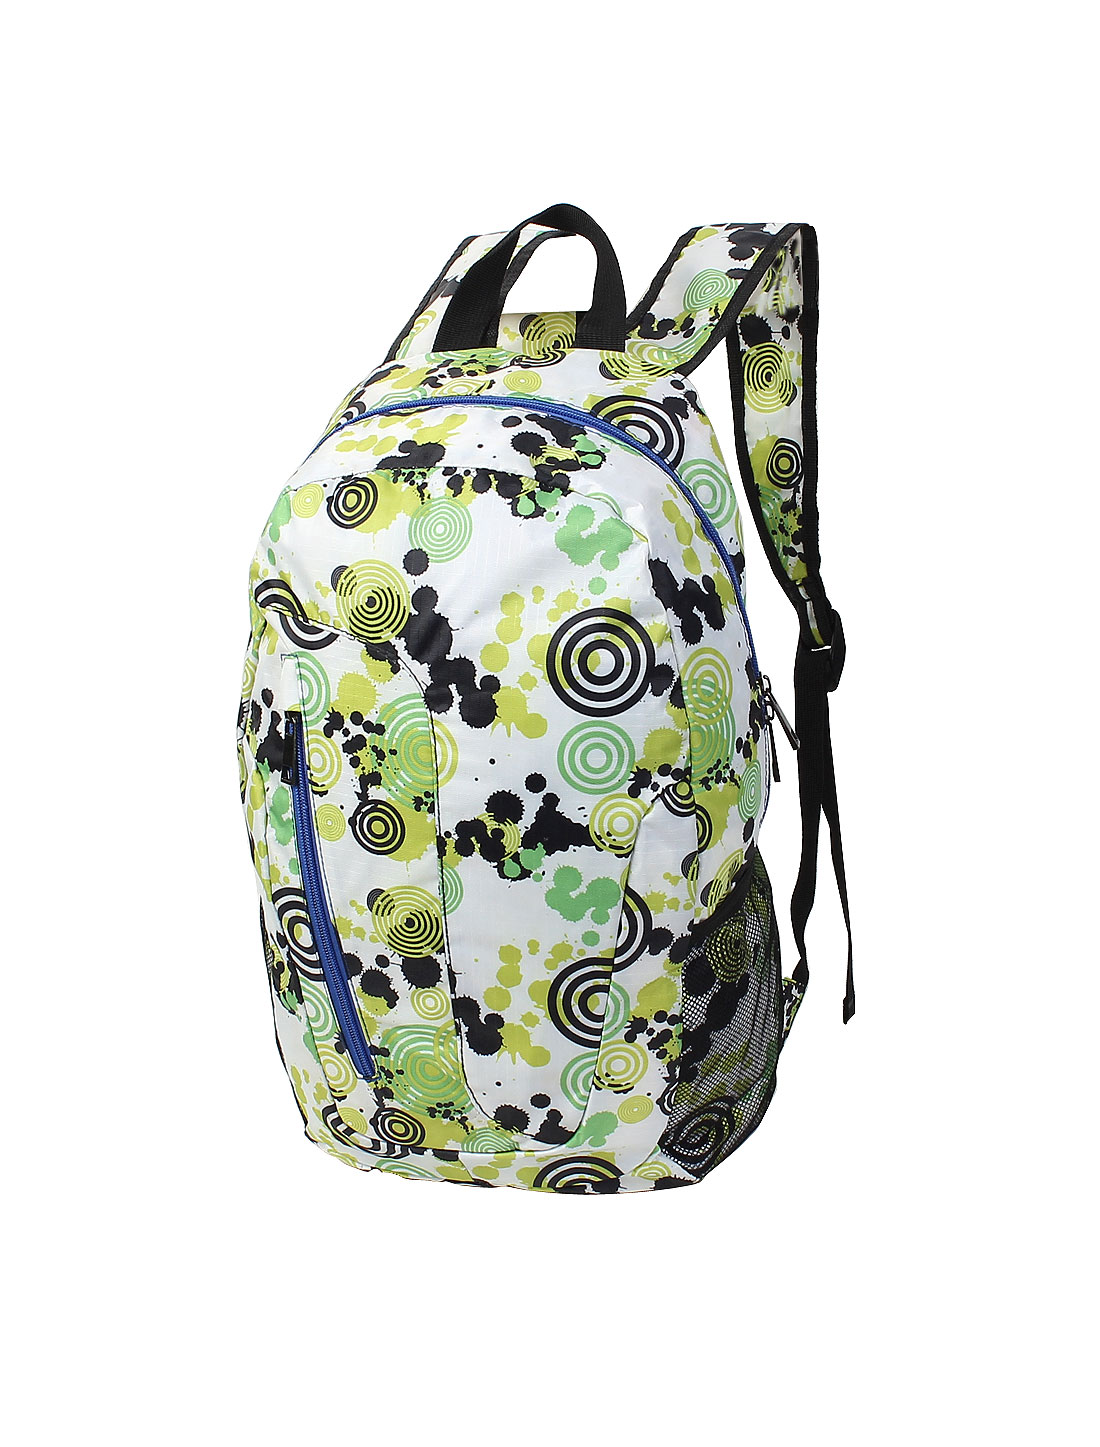 Colorful Circles Print Canvas Travel Camping Hiking Backpack School Shouder Bag